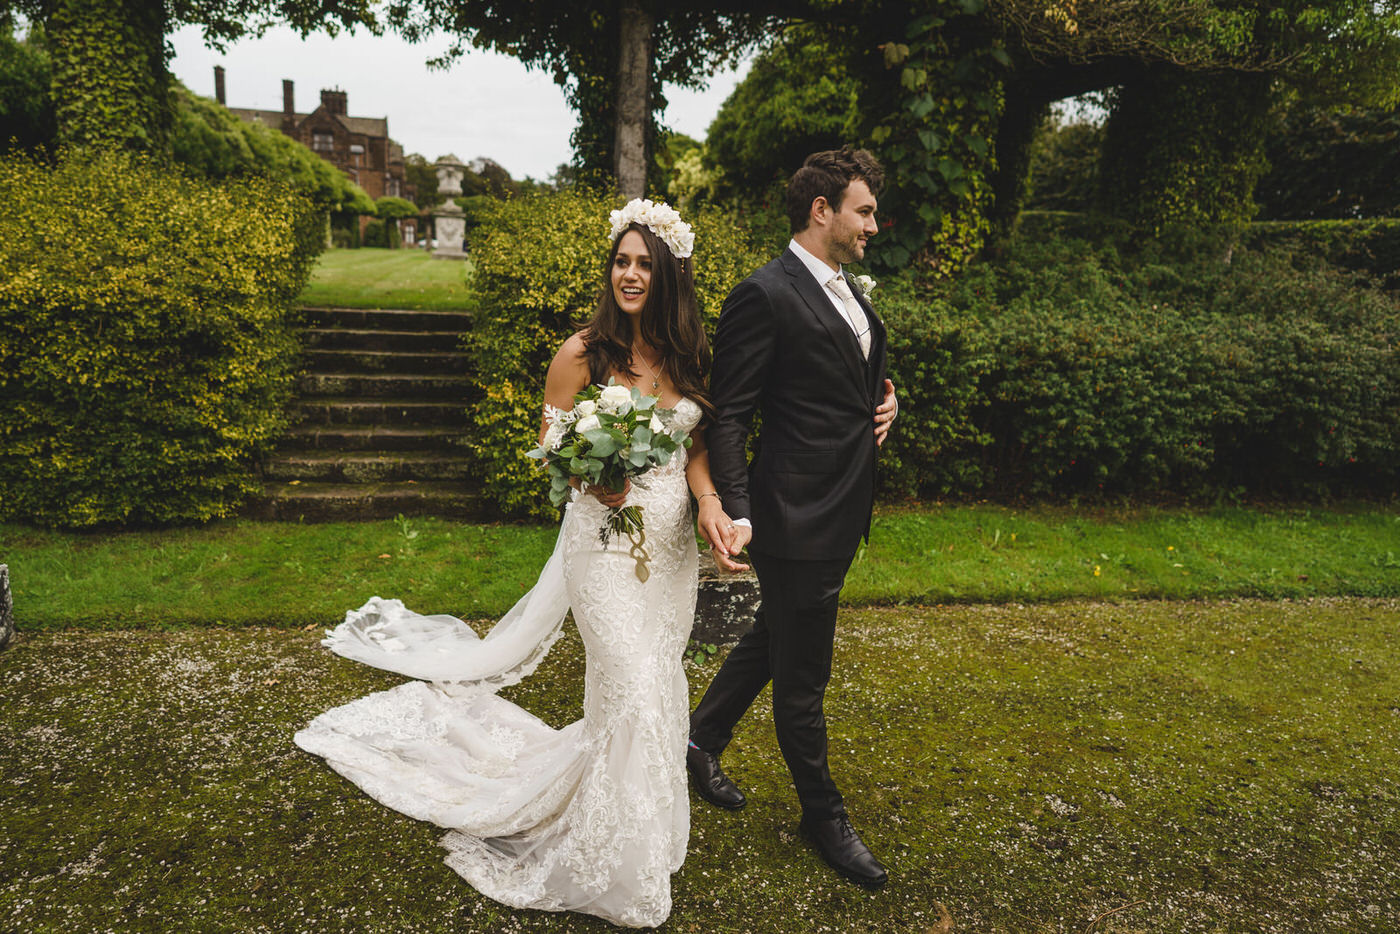 the happy couple take the chance to walk around the grounds of their wedding venue in Liverpool